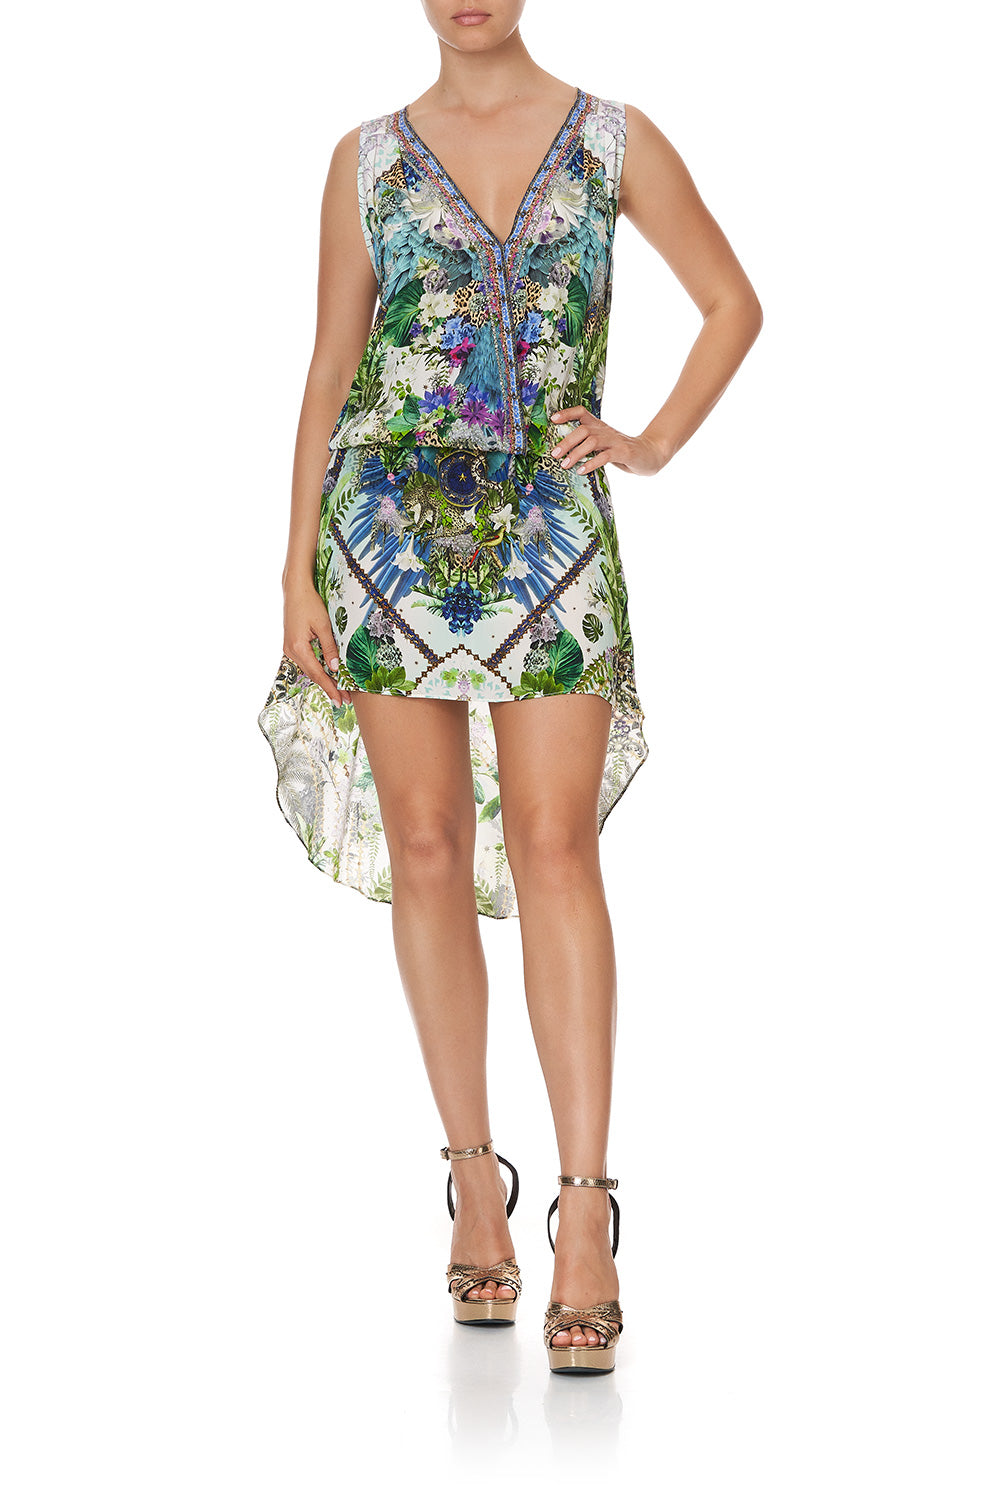 CROSS OVER DRESS WITH LONG BACK MOON GARDEN